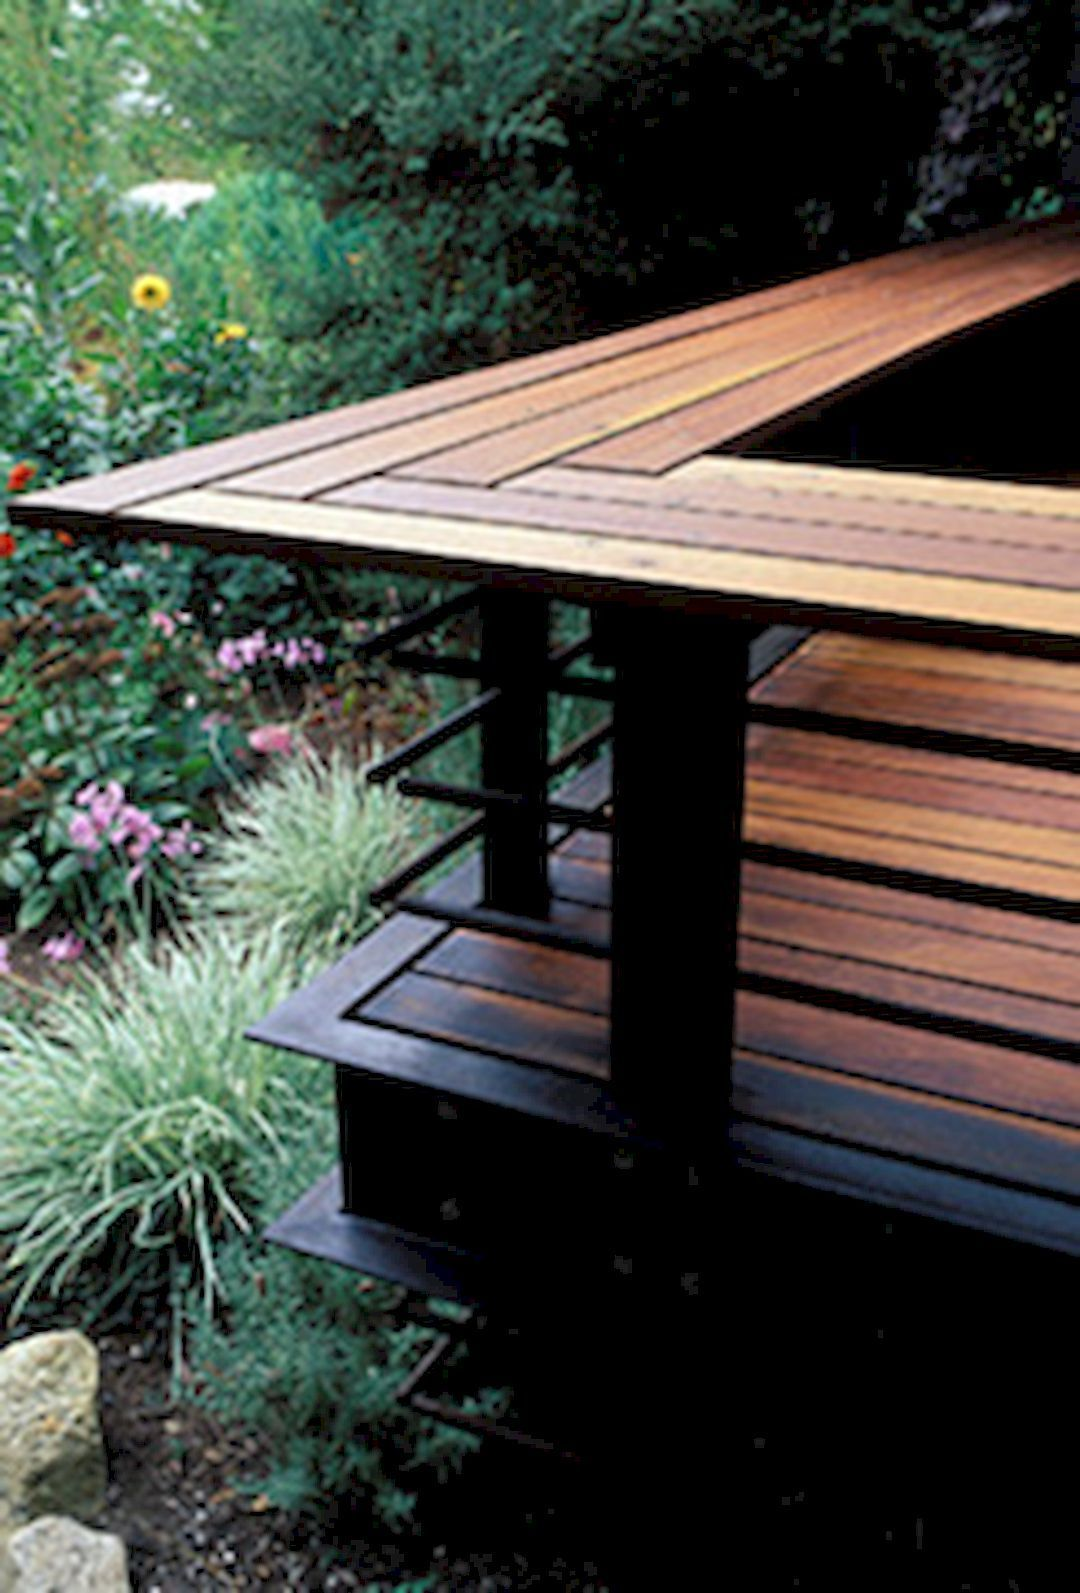 4 Tips To Start Building A Backyard Deck Deck Railing Design Deck Designs Backyard Decks Backyard